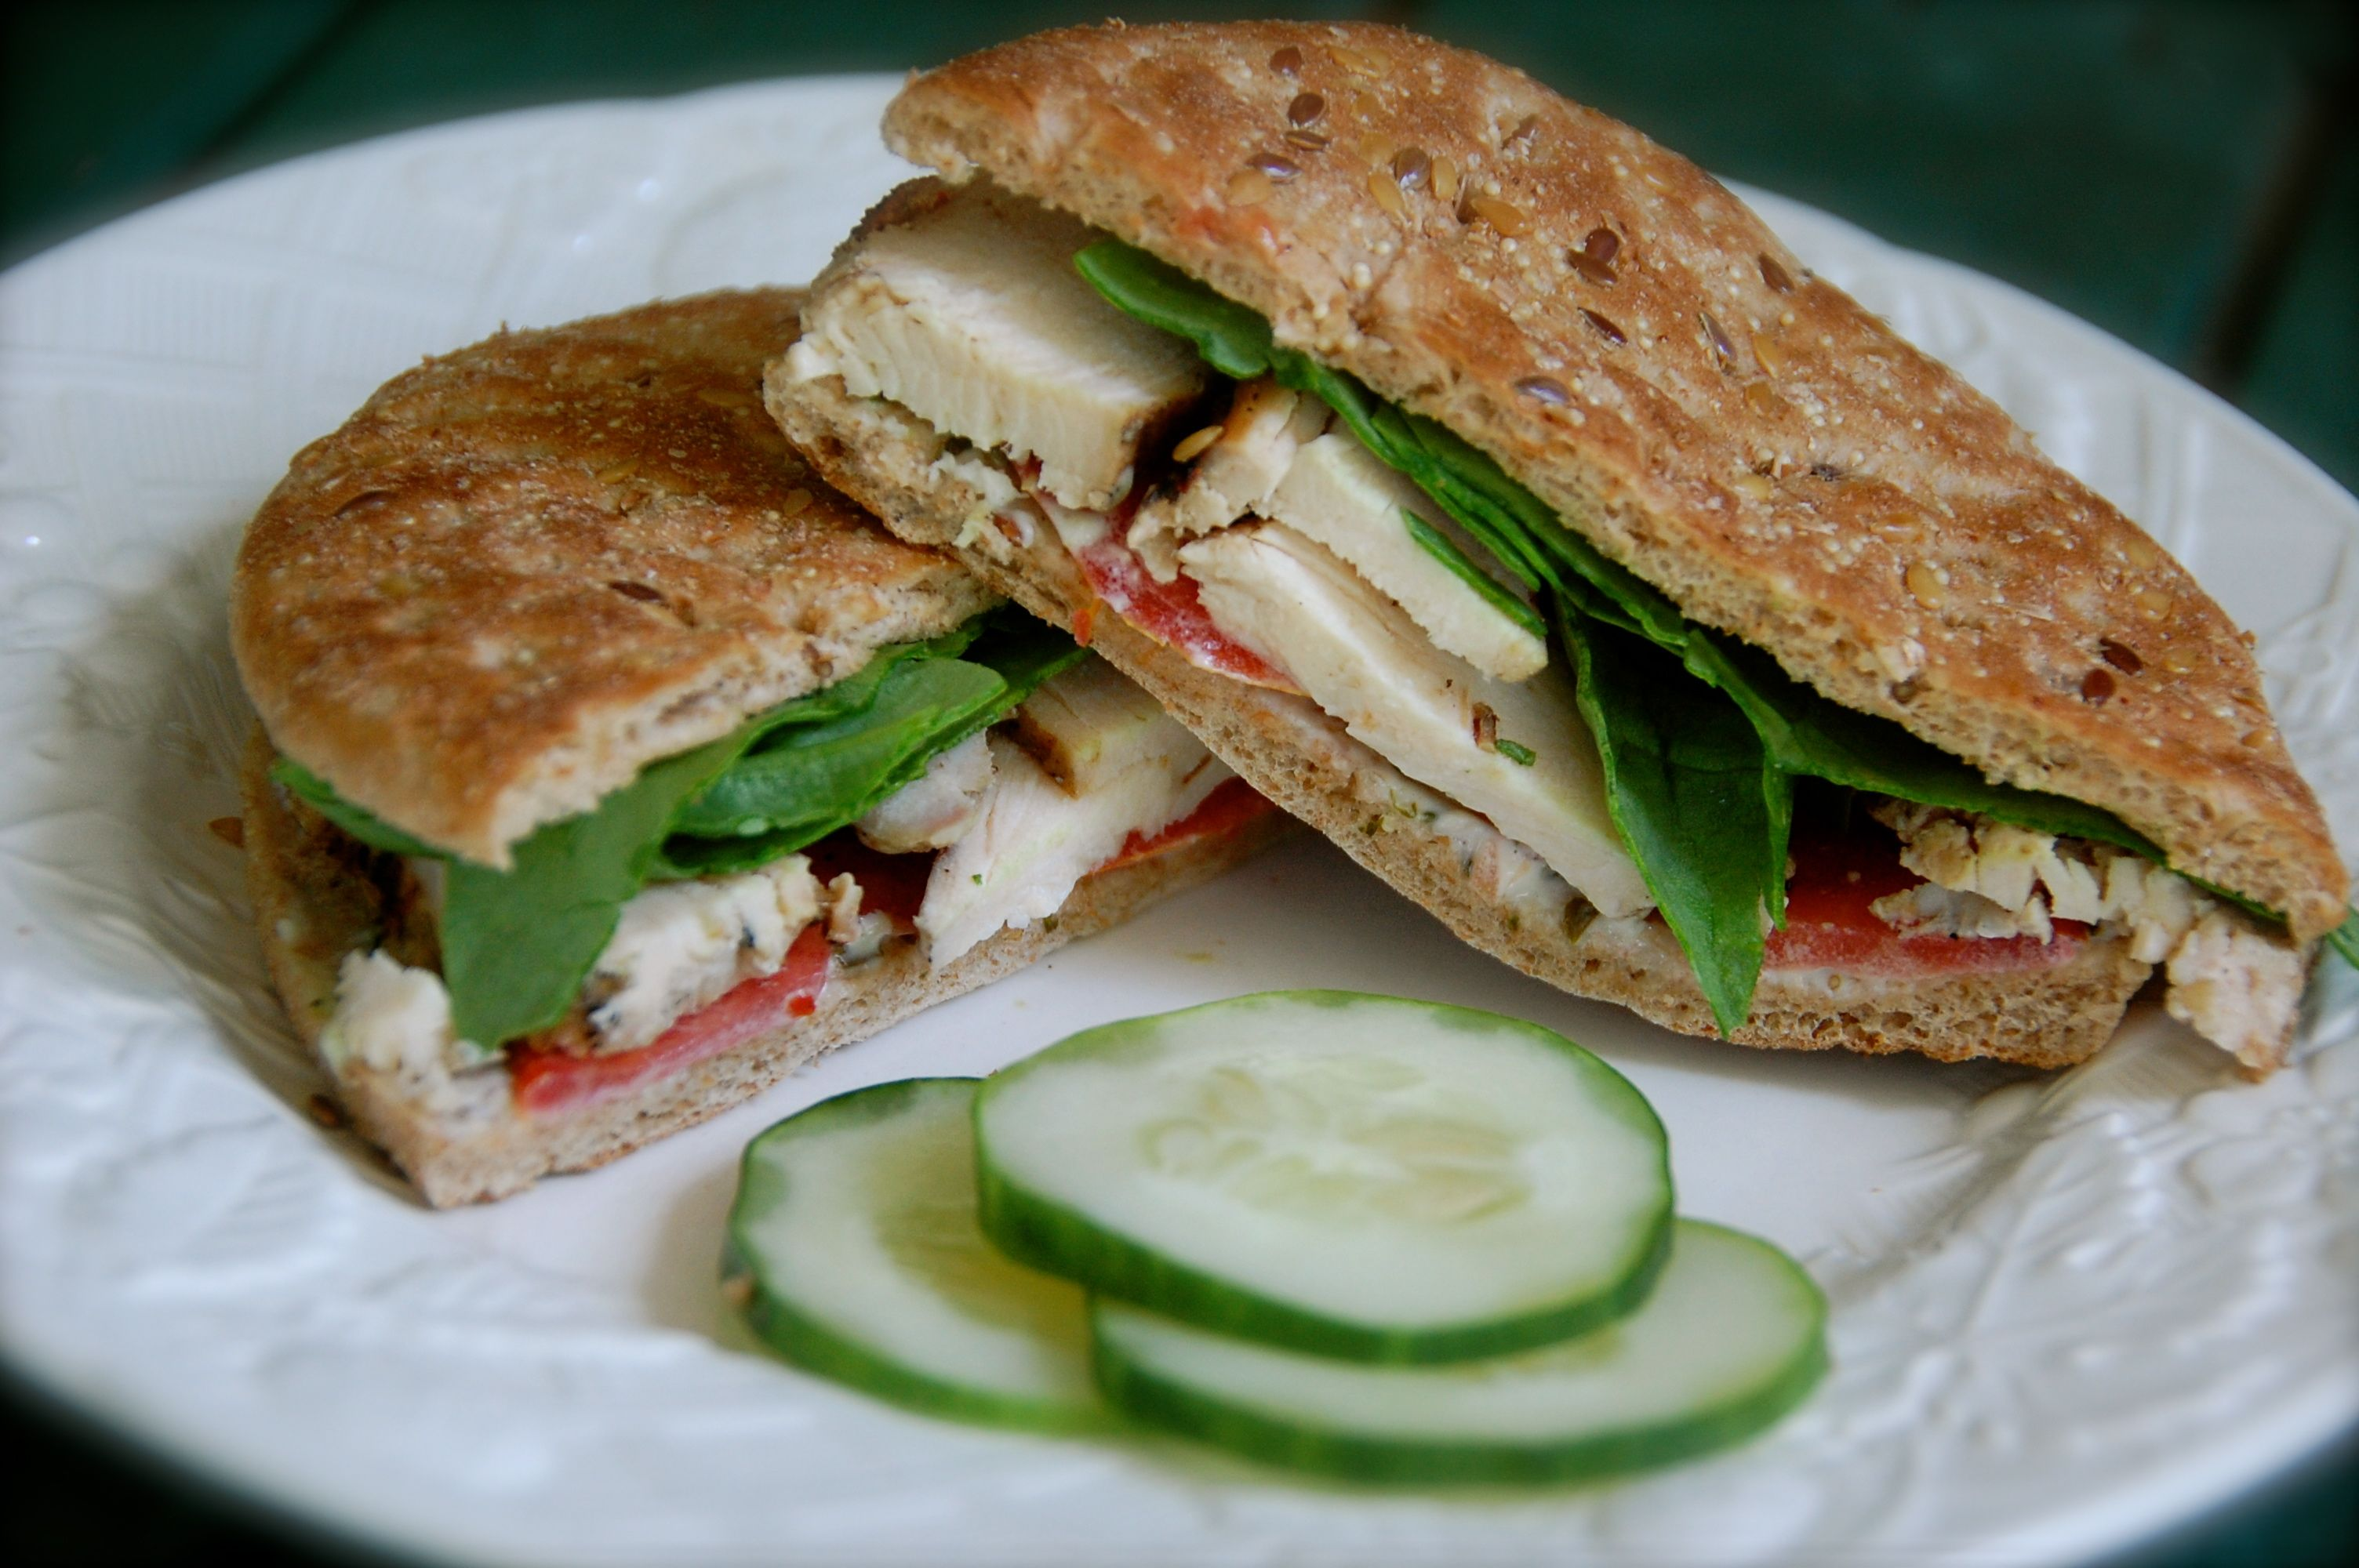 Basil and grilled chicken sandwich arnold 100 calorie